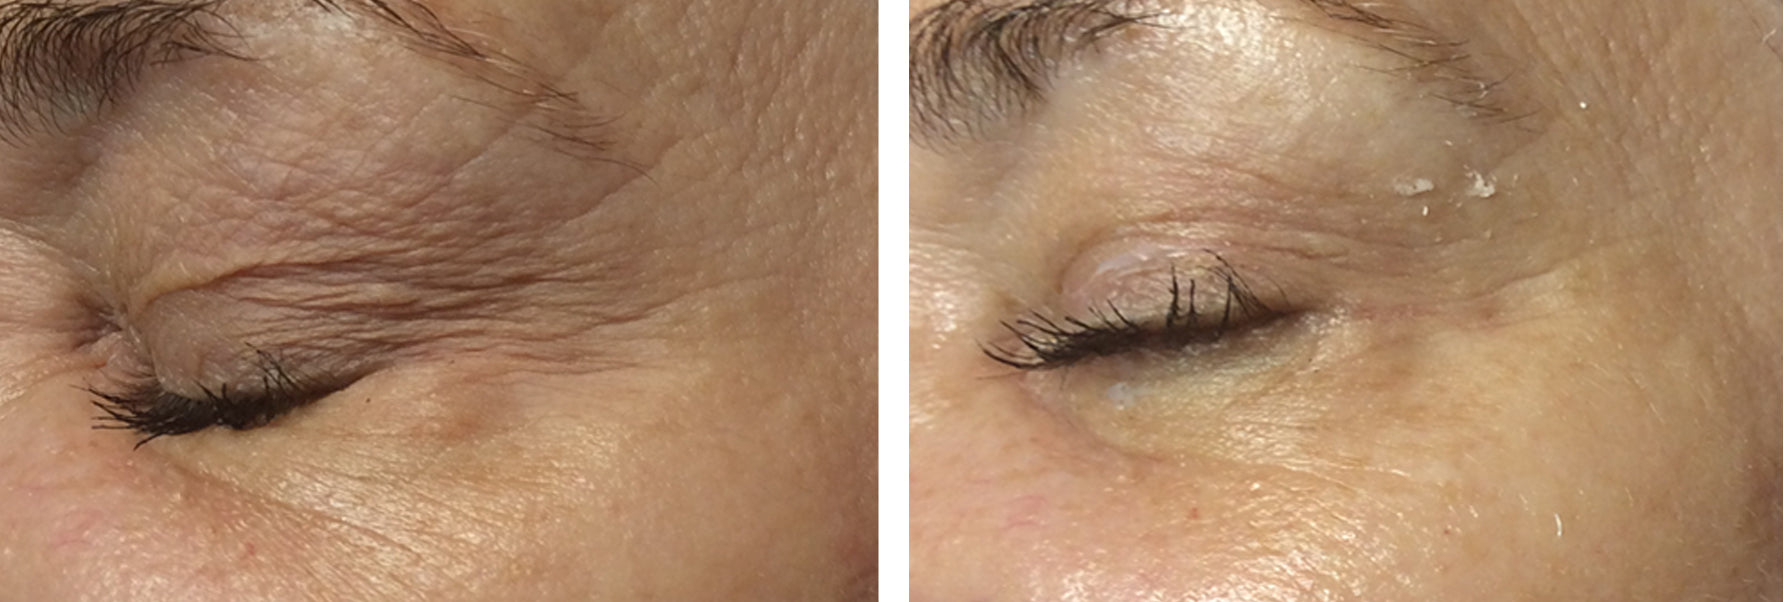 women-eyes-treatment-before-after-results